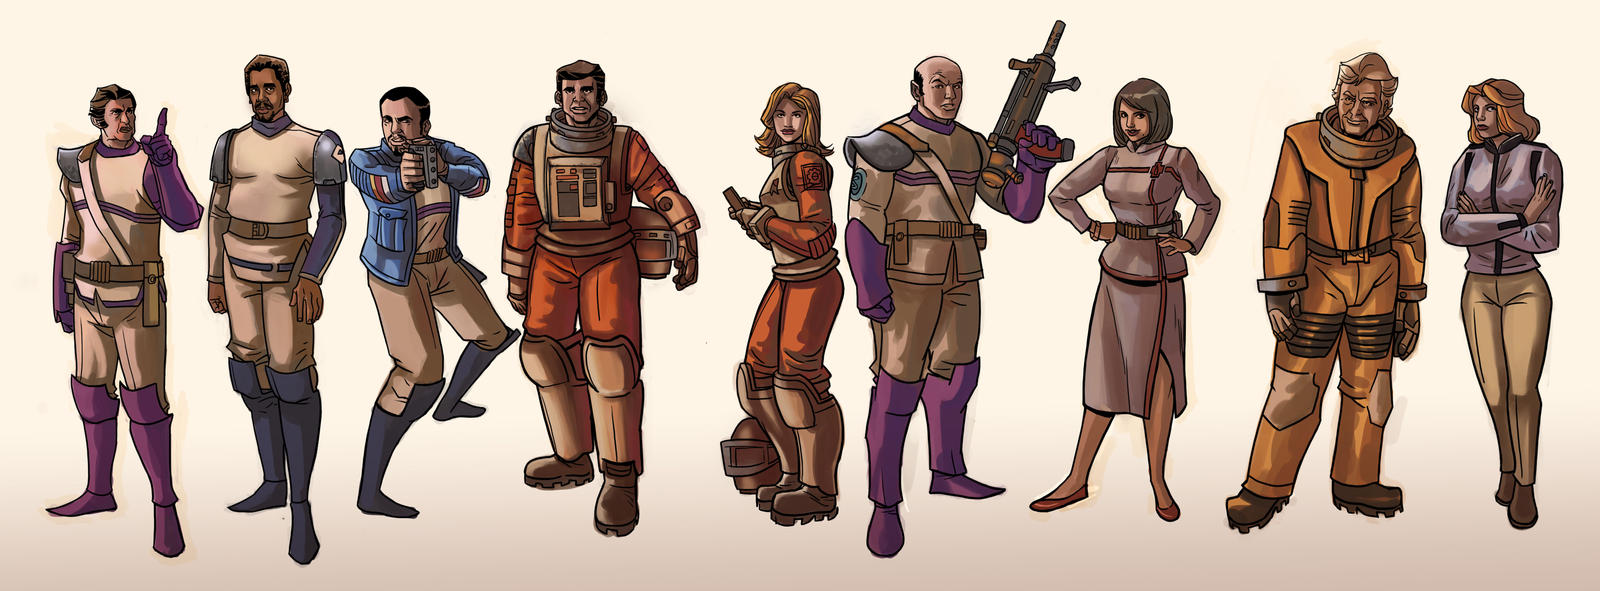 space 1999 characters by davidhueso on deviantart